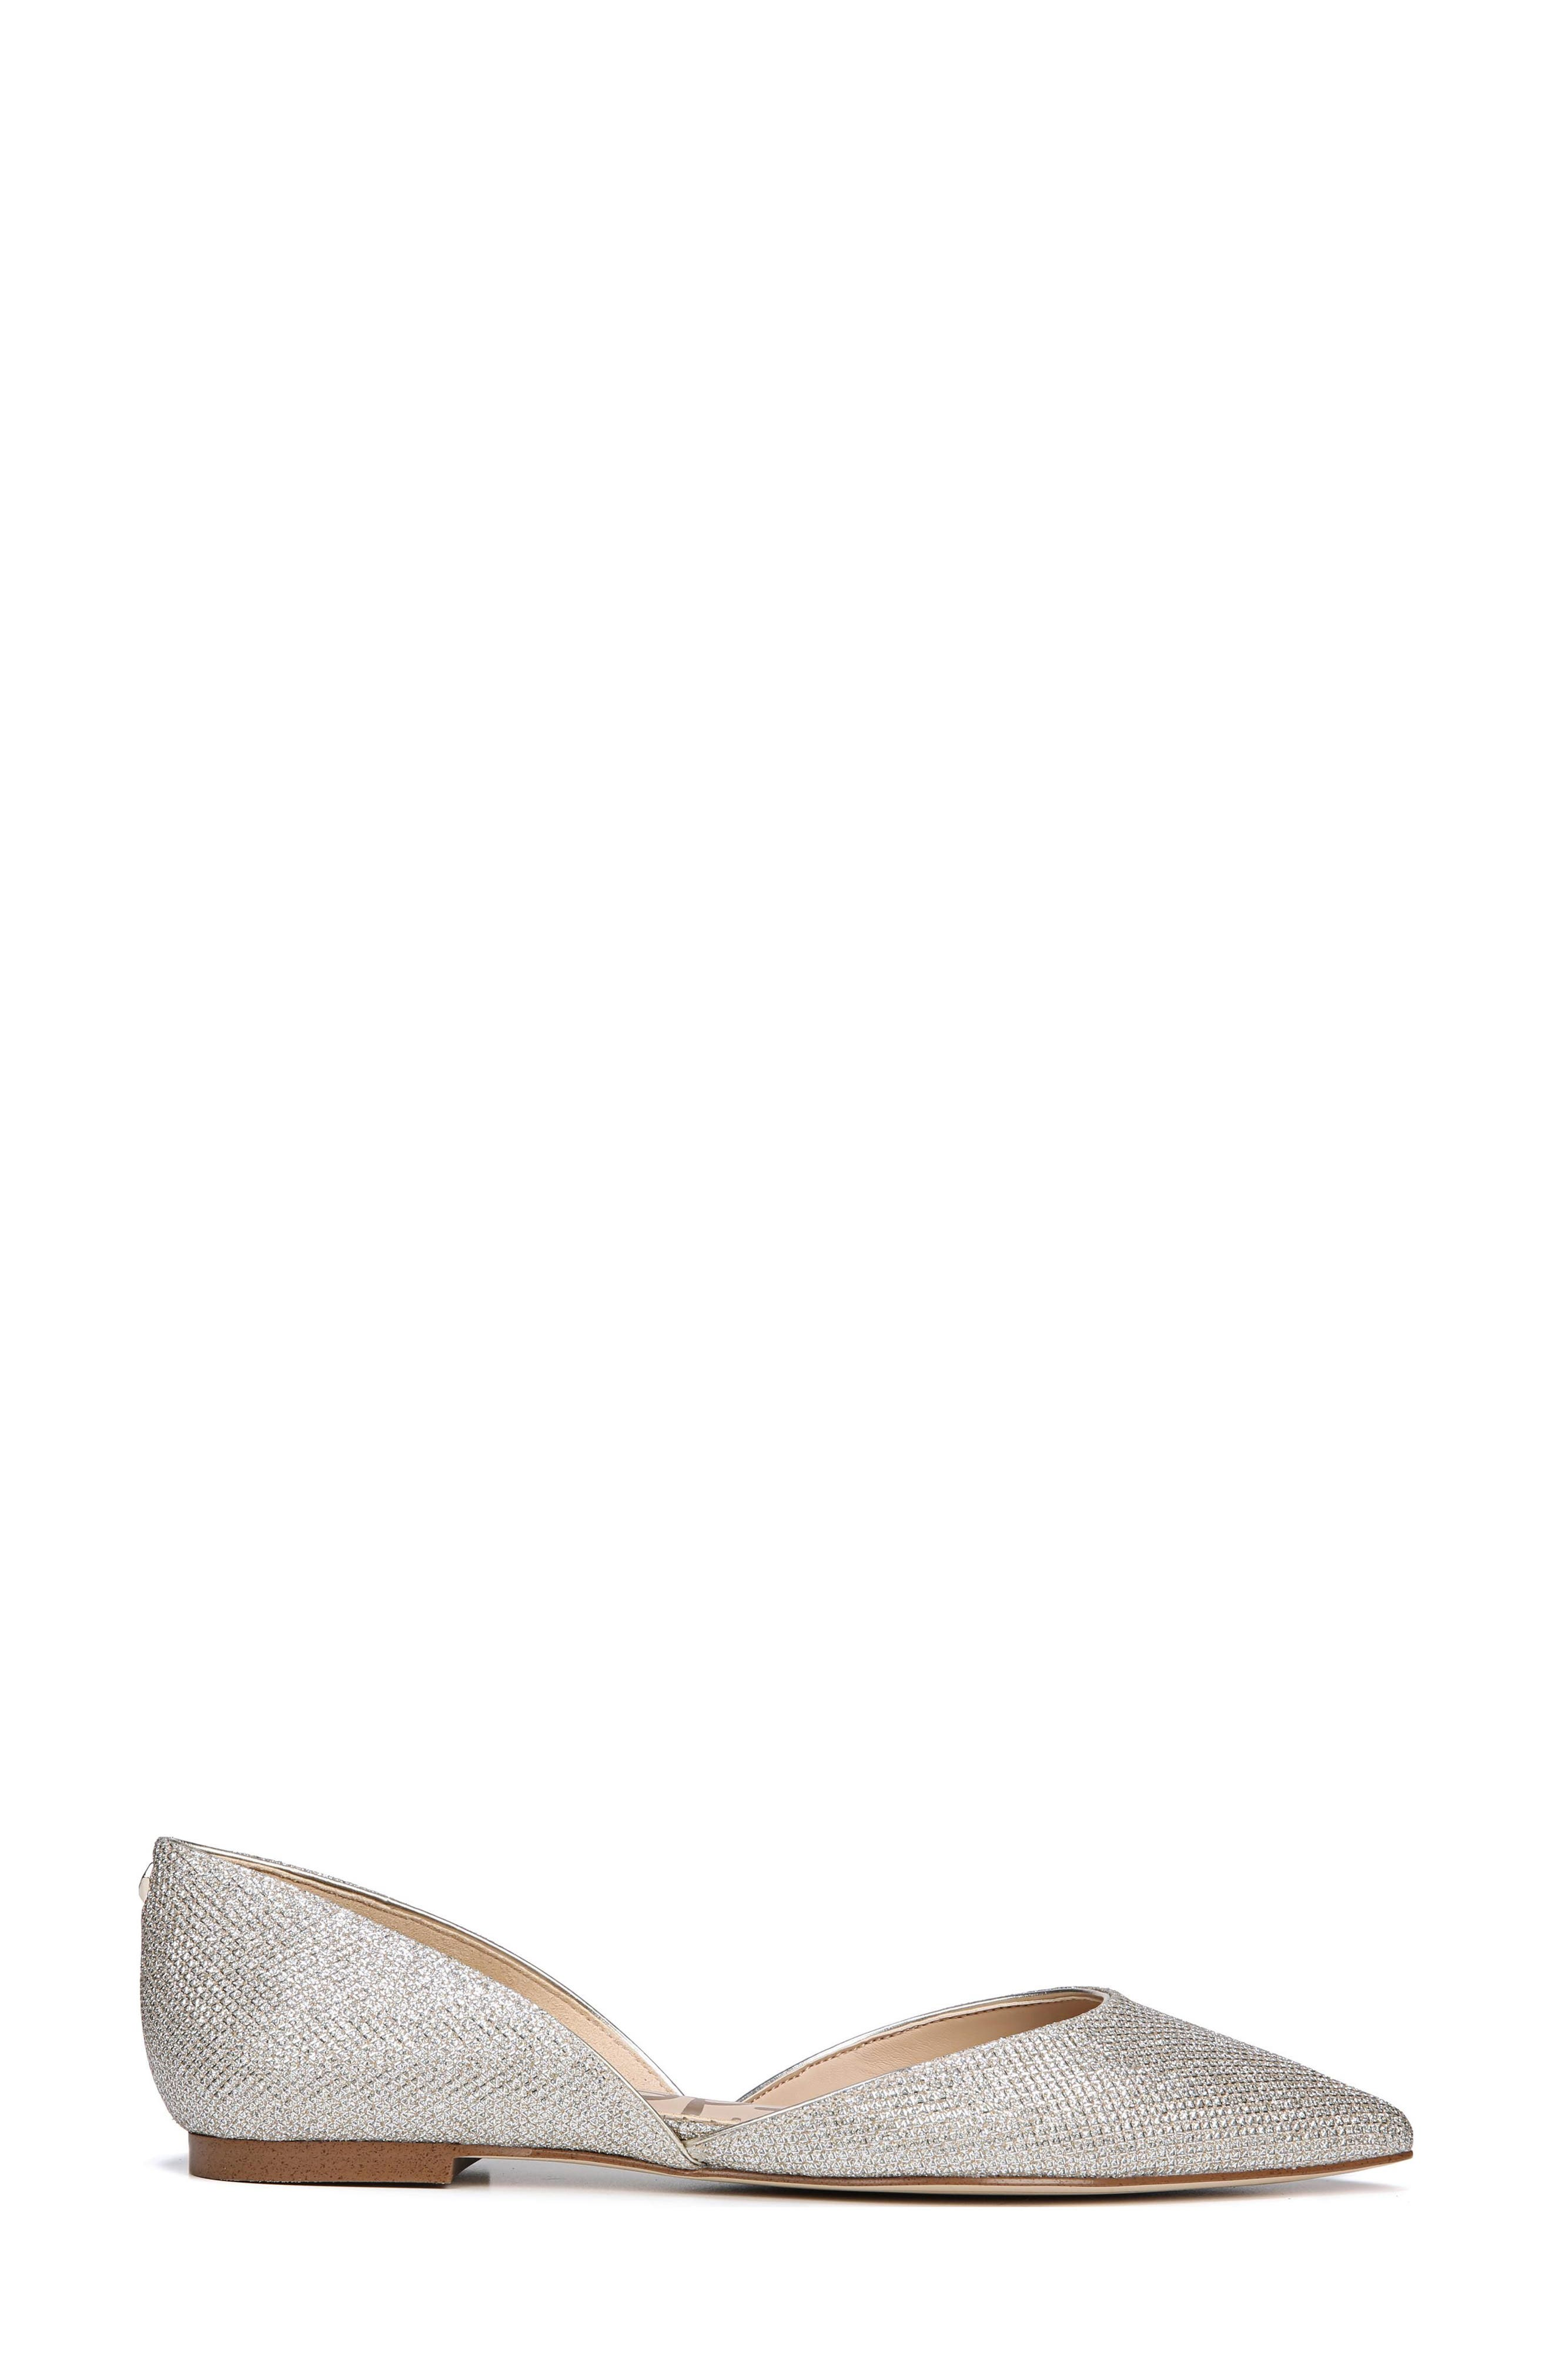 Rodney Pointy Toe d'Orsay Flat,                             Alternate thumbnail 3, color,                             JUTE GLAM FABRIC